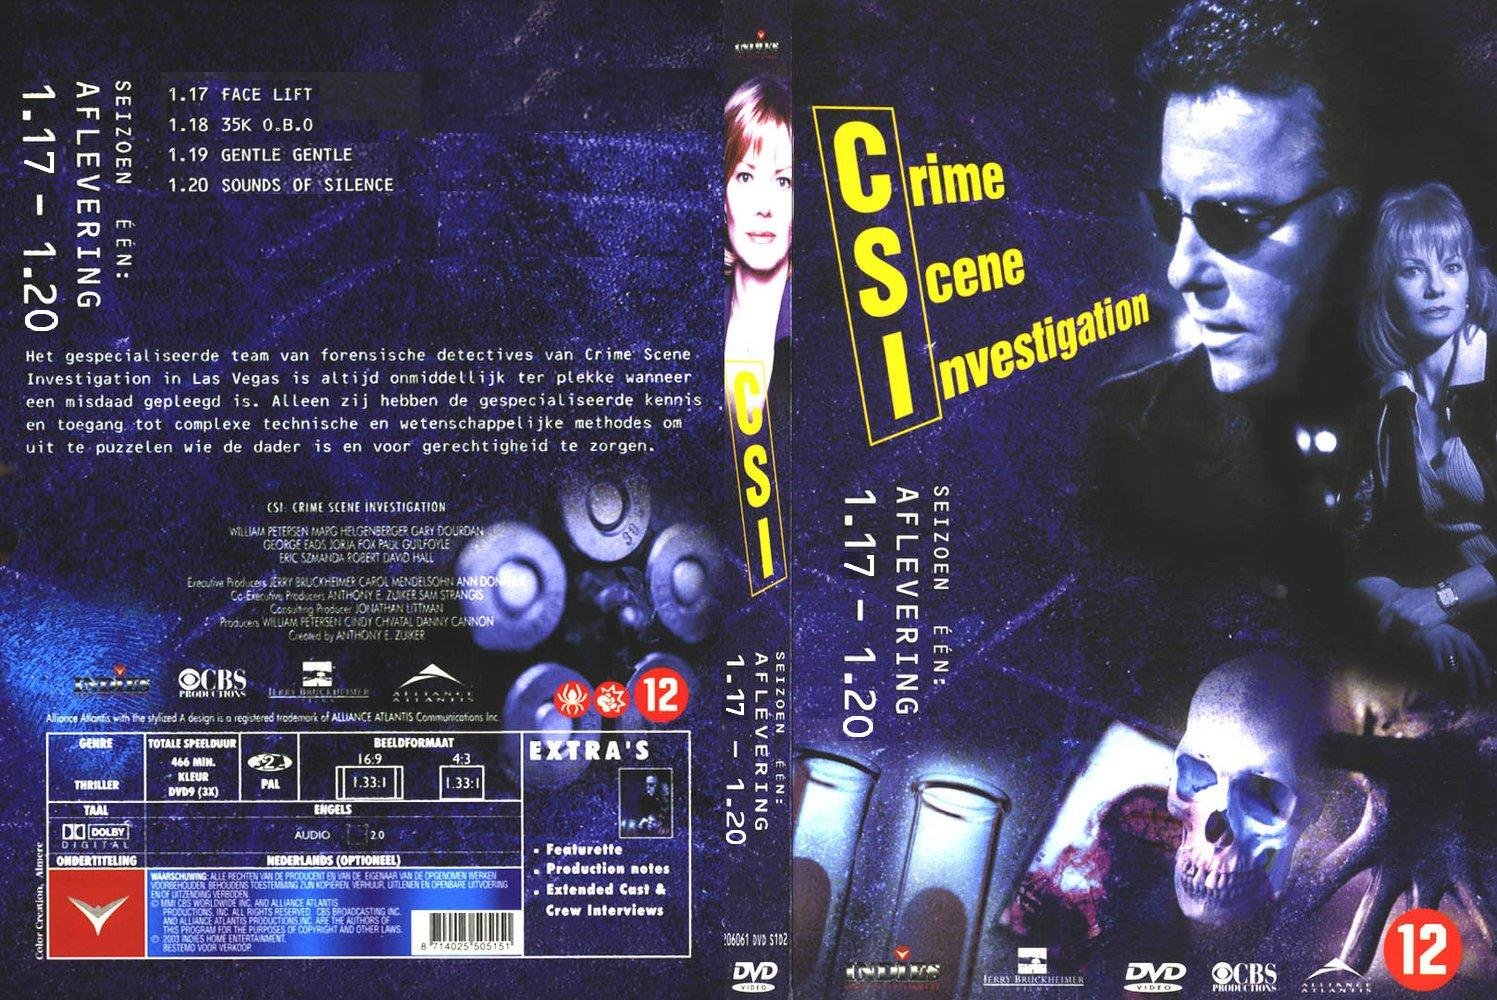 C_S_I_Season_1_Episodes_17-20_Dutch-[cdcovers_cc]-front.jpg